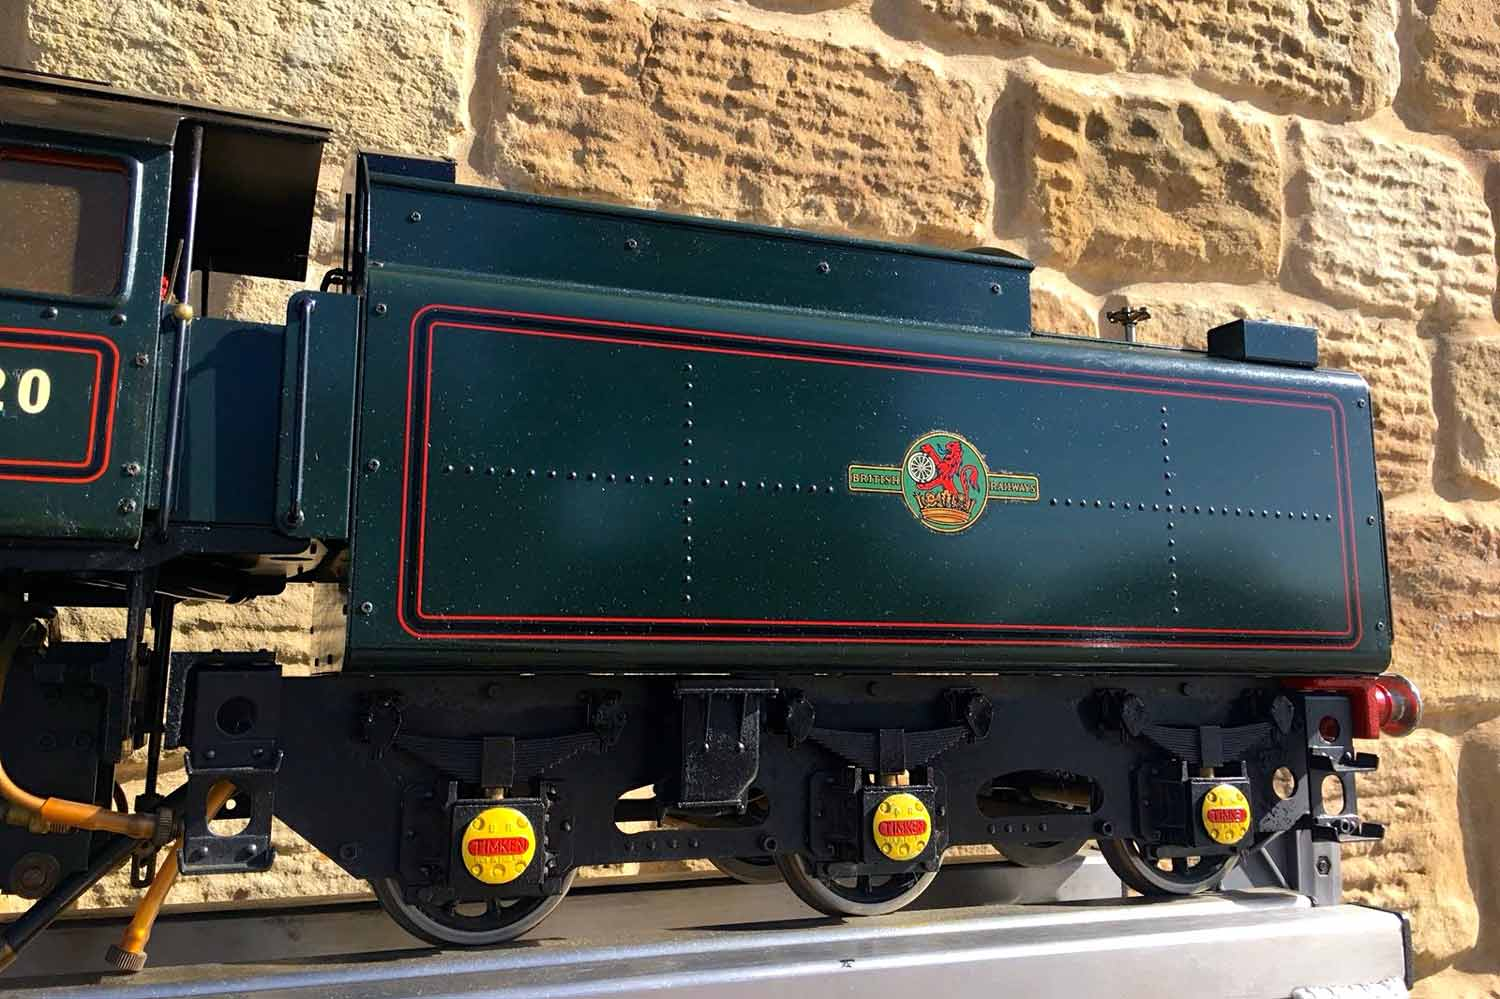 test 3-and-a-half-inch-BR-9F-OS-live-steam-locomotive-for-sale-11